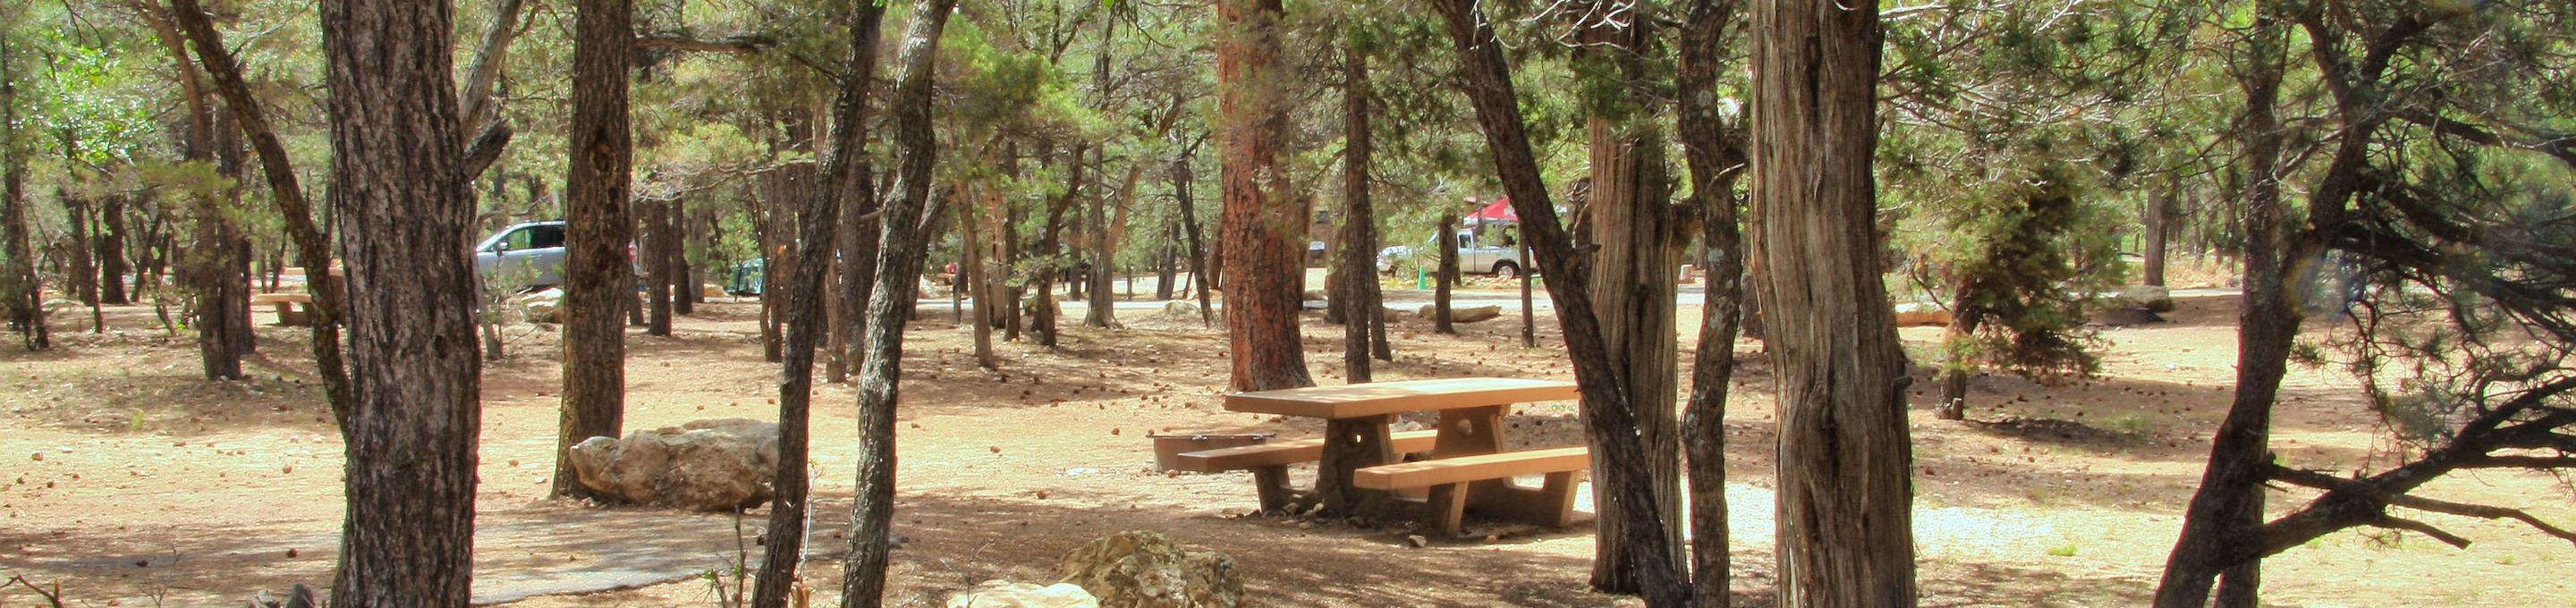 Picnic table and parking spot, Mather CampgroundThe picnic table and parking spot for Aspen Loop 12, Mather Campground